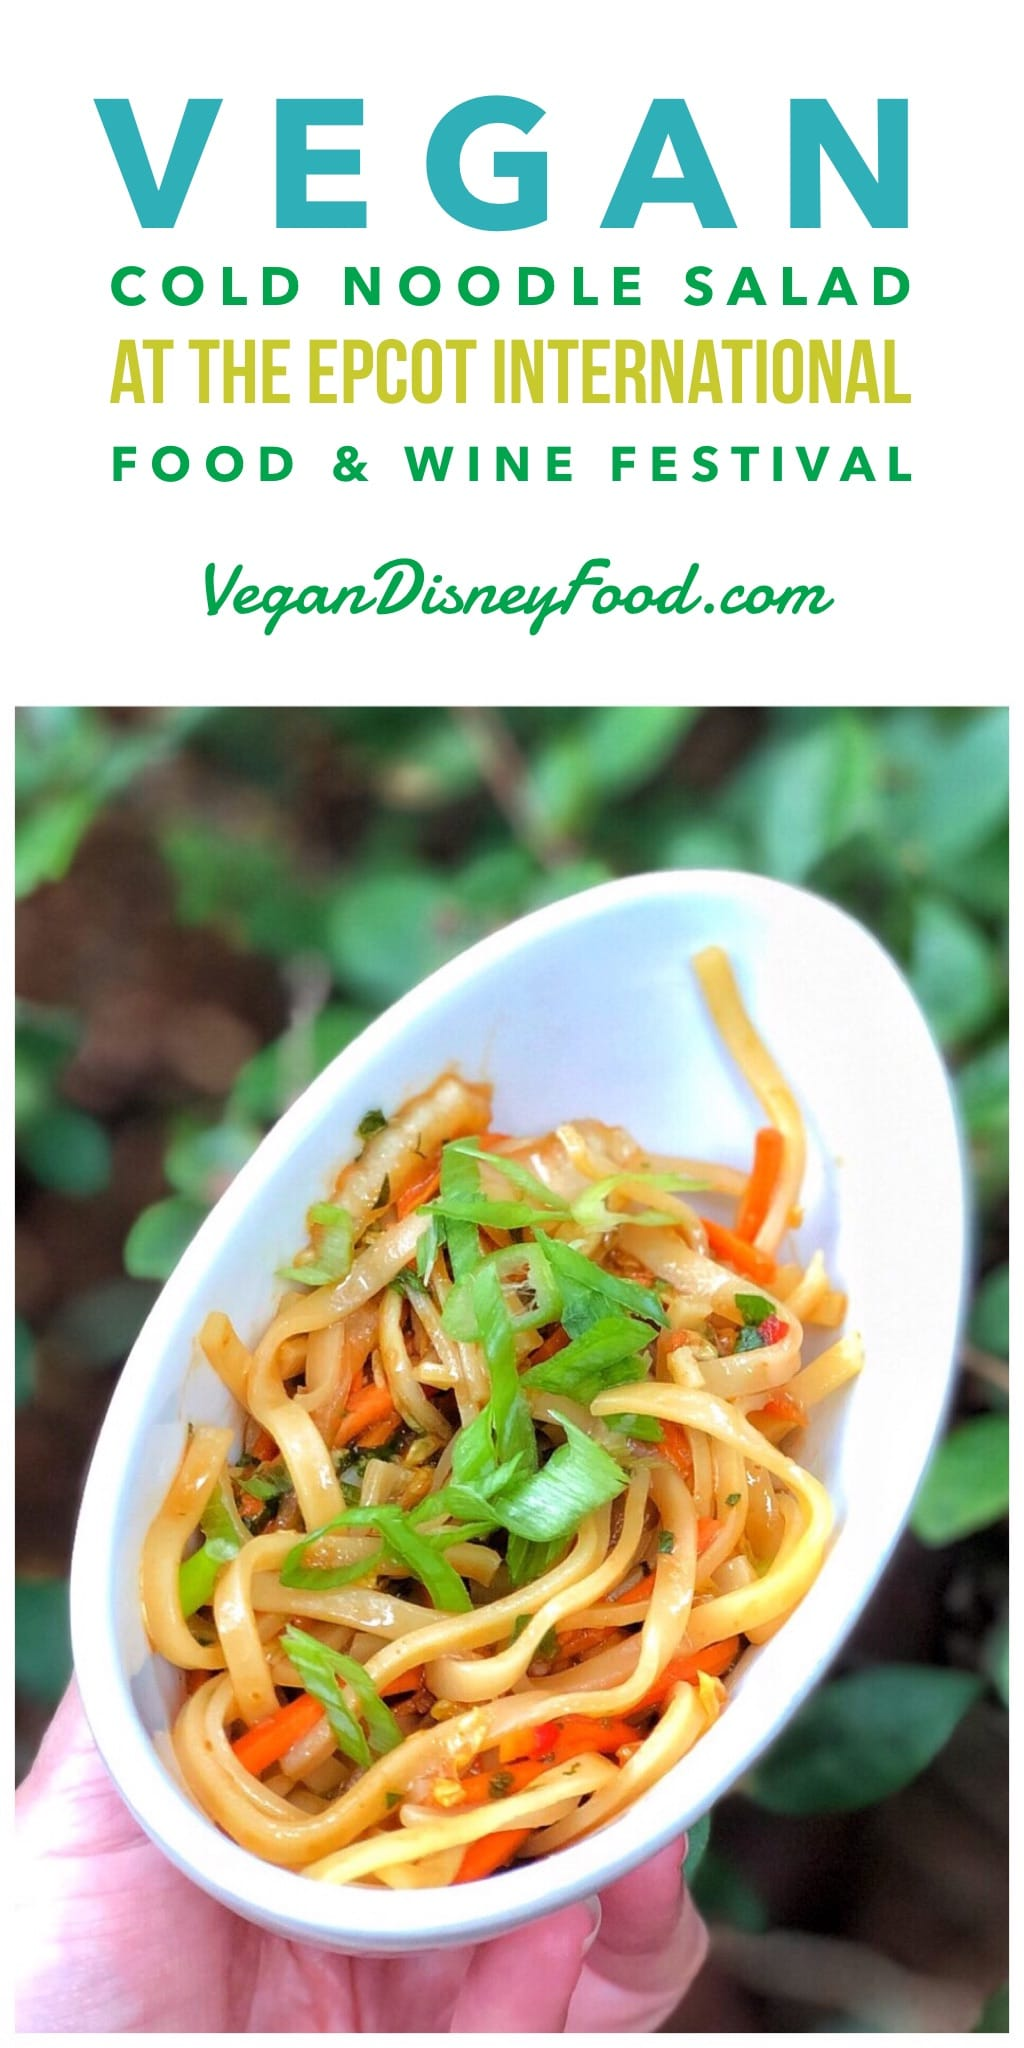 Vegan Cold Noodle Salad at the 2019 Epcot Food and Wine Festival at Walt Disney World